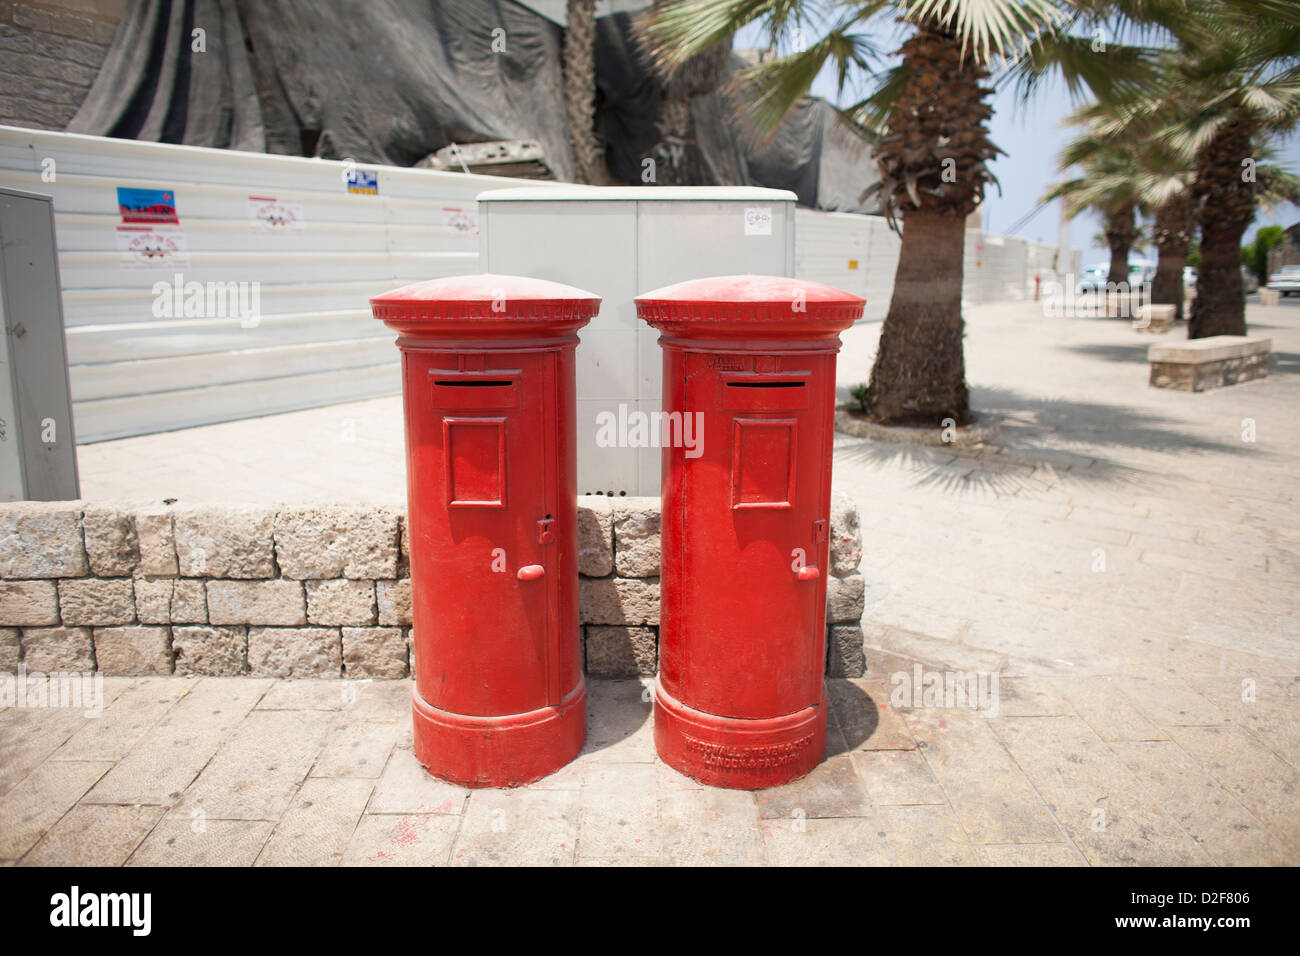 A pair of traditional British red pillar postboxes on a street in Israel. - Stock Image